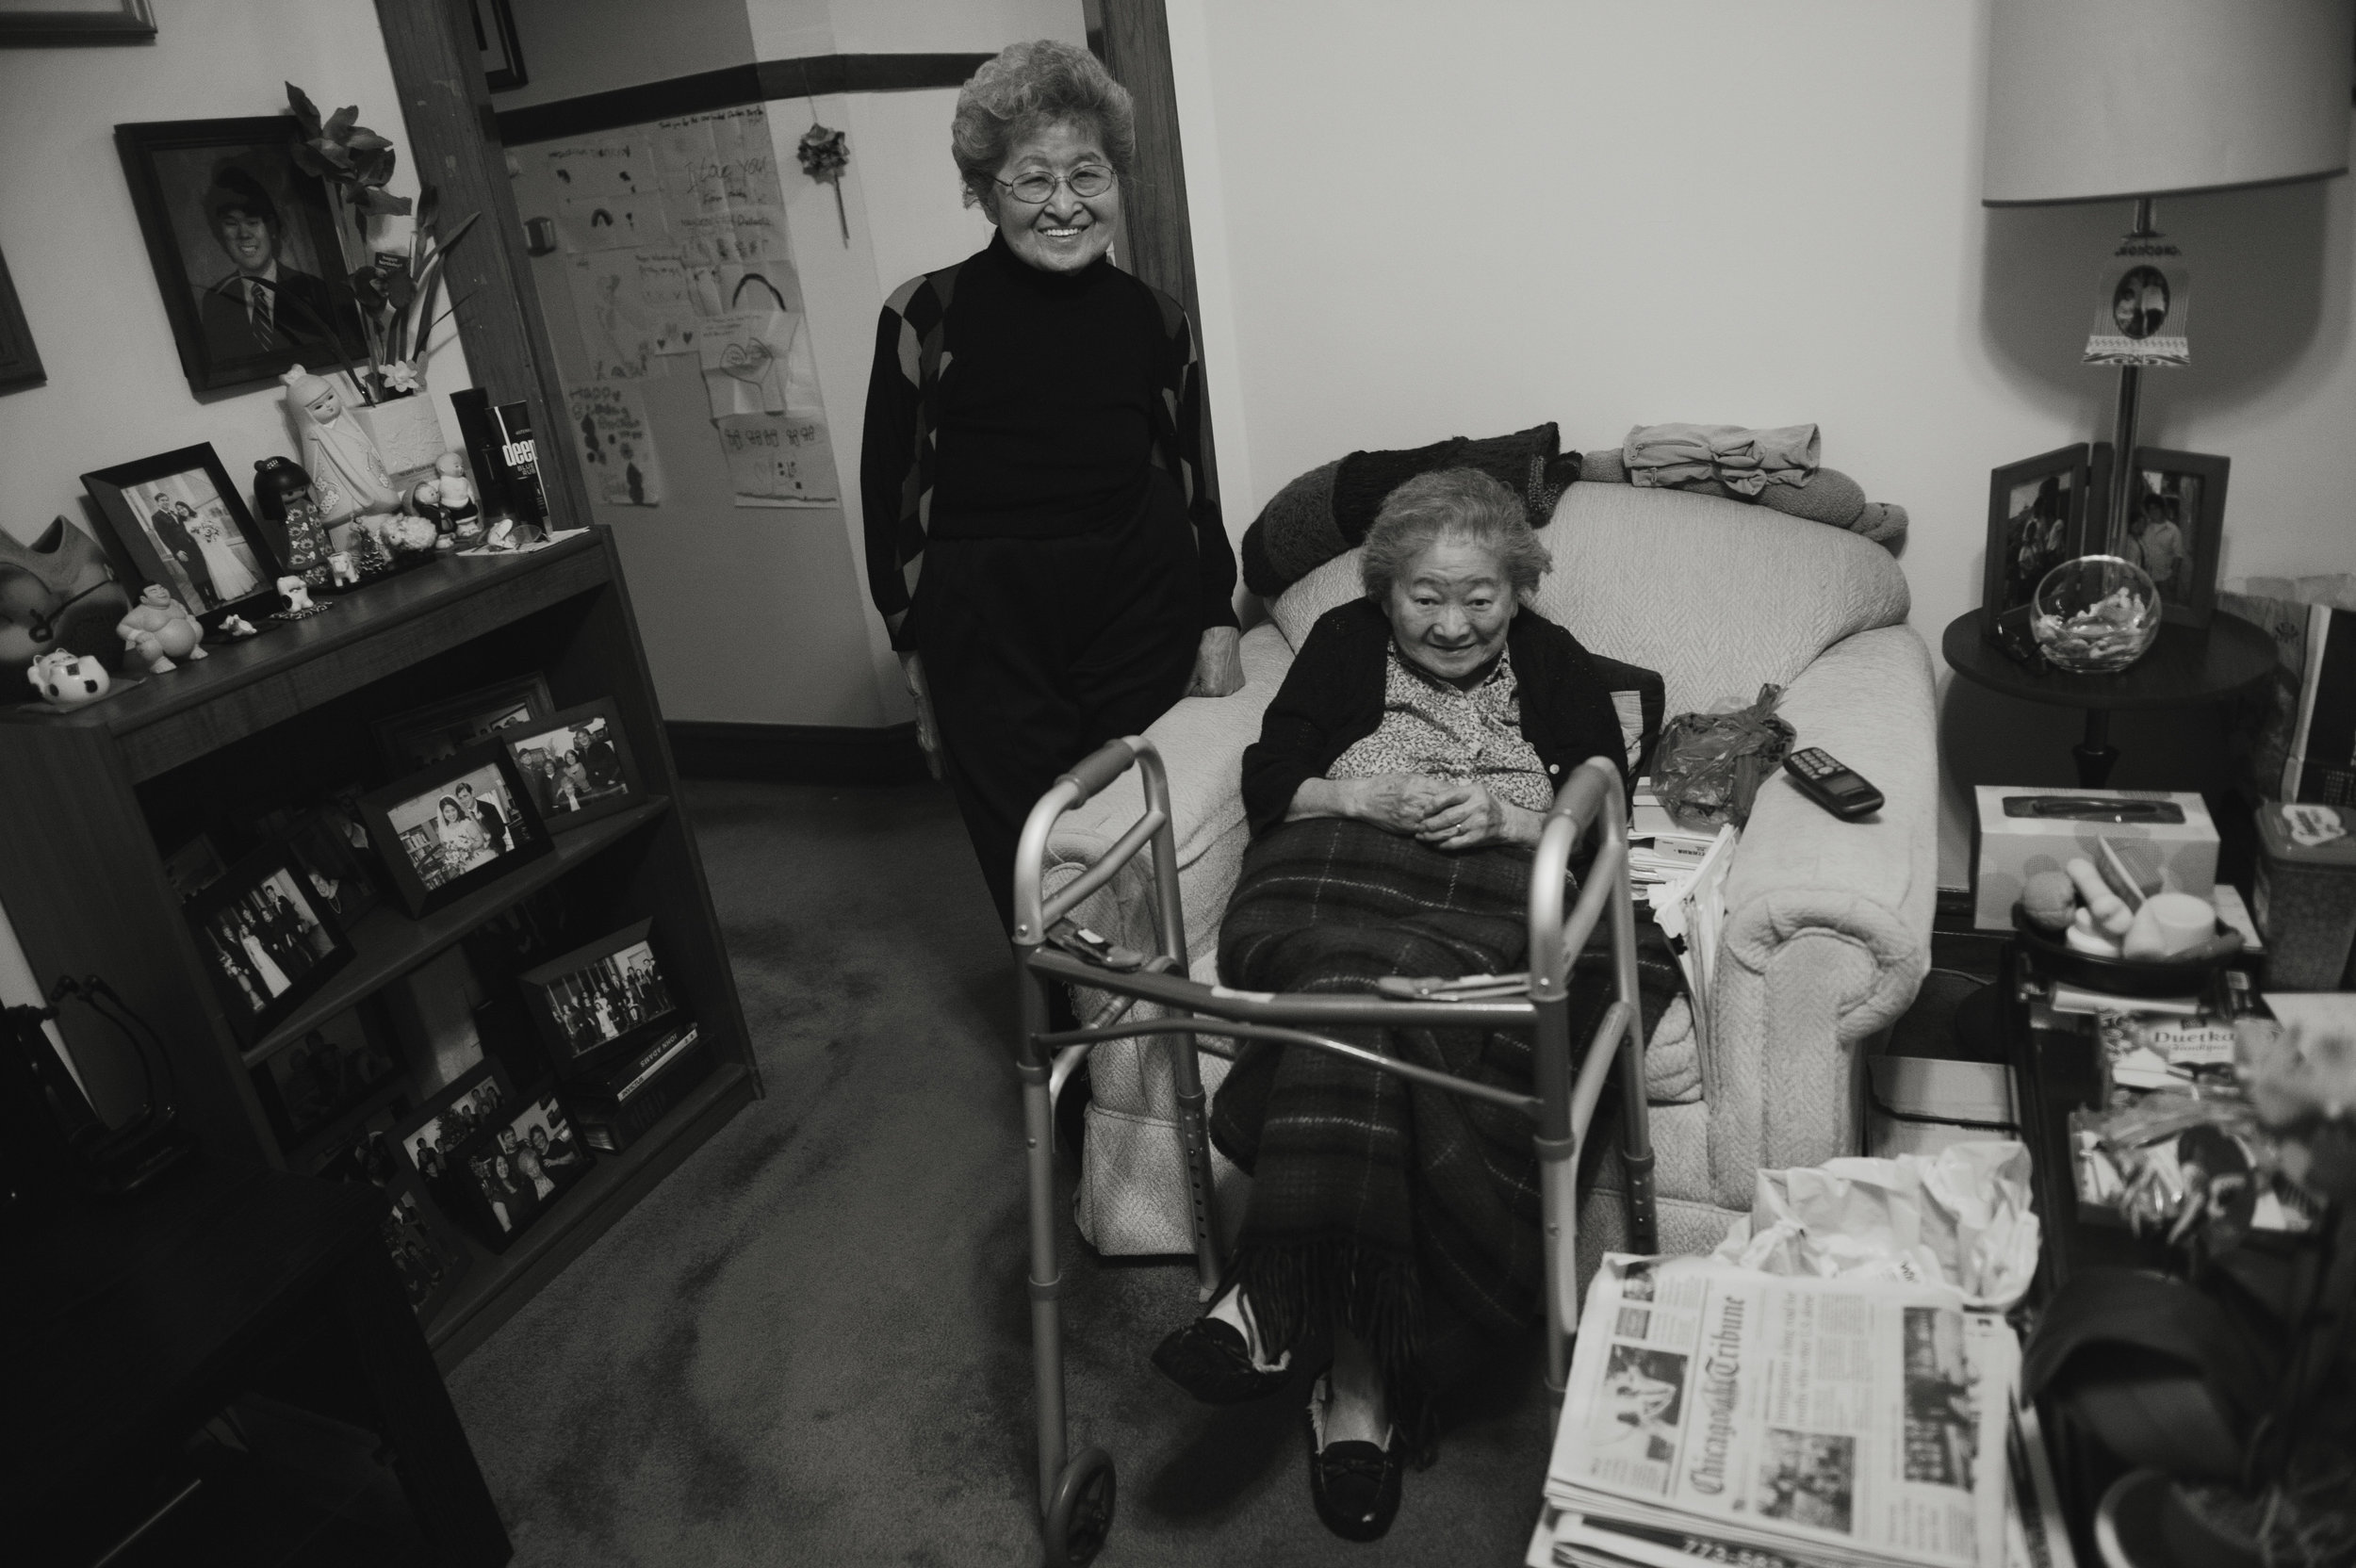 Fumiko (left) and her older sister Yayeko have lived together in the same building for 59 years.